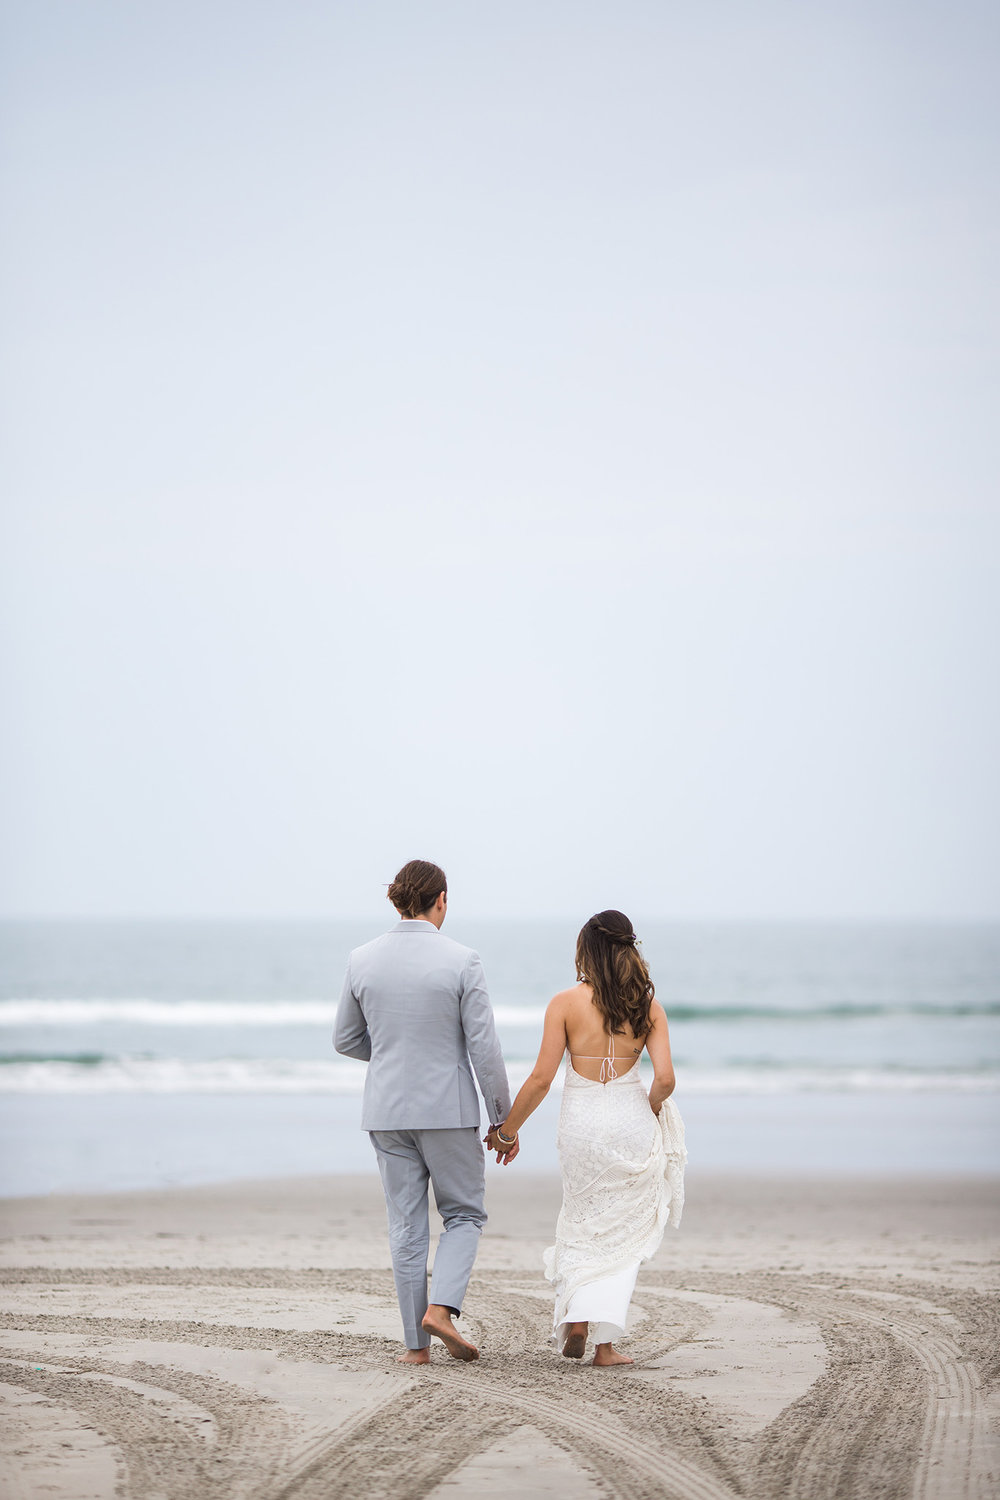 icona_diamond_beach_wedding_11.jpg